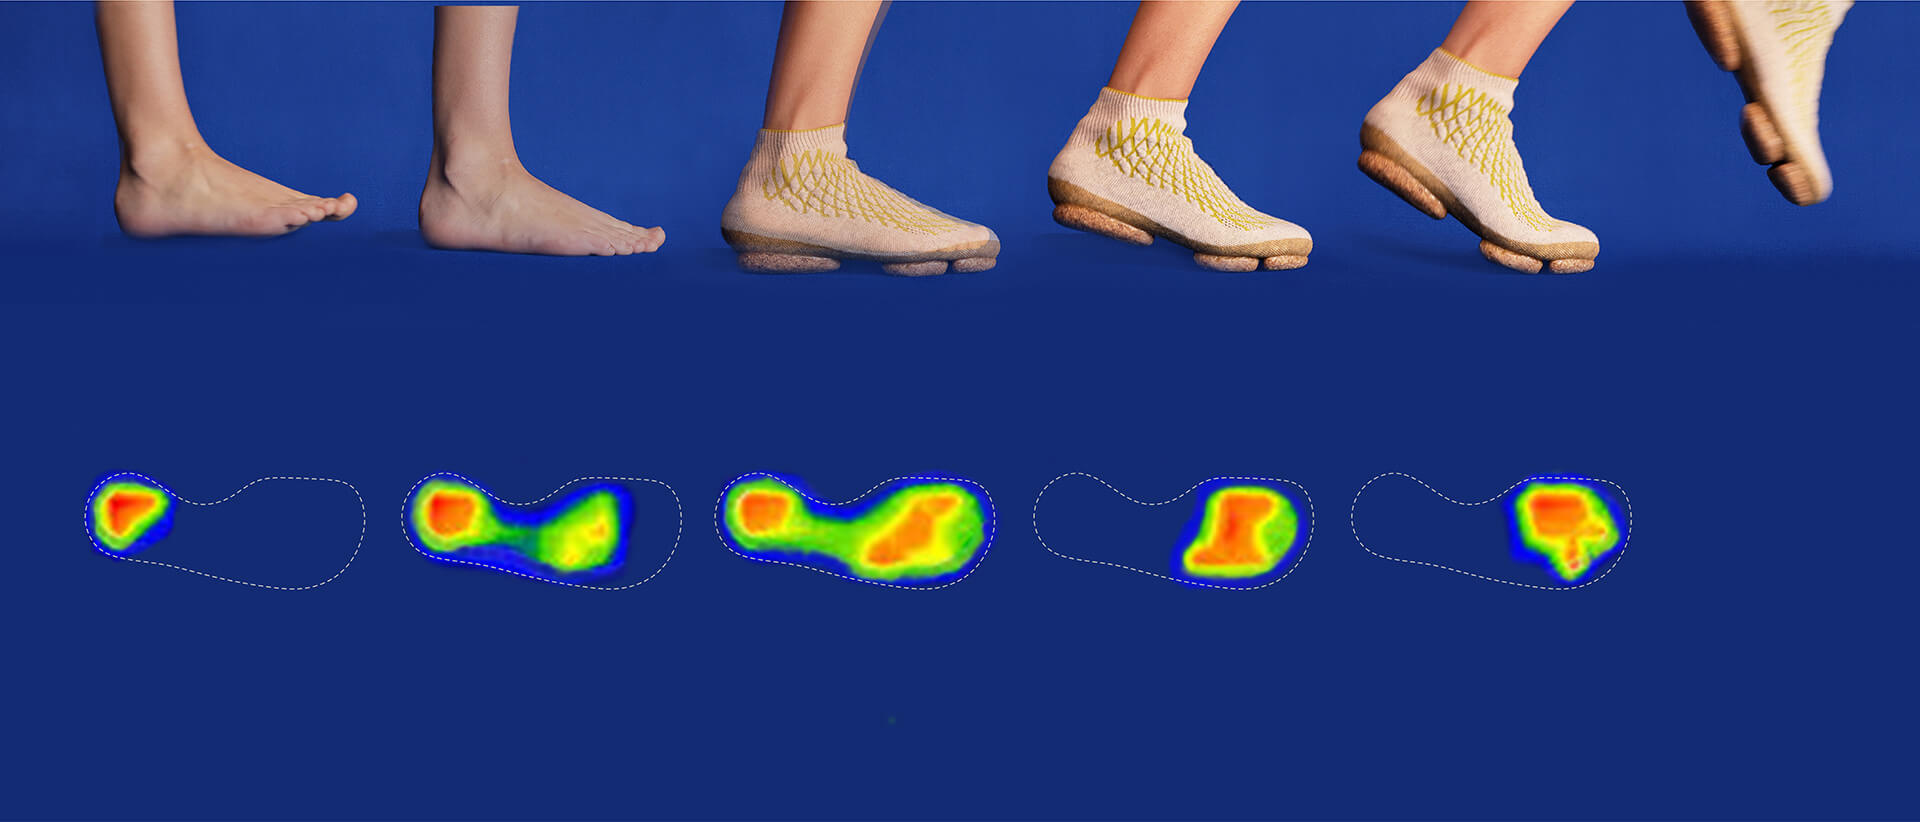 Emilie Burfeind noted pedobarographic measurements of the foot pressure while walking, taking into account material properties and physiological conditions of the foot   Sneature bio-shoes   Emilie Burfeind   STIRworld